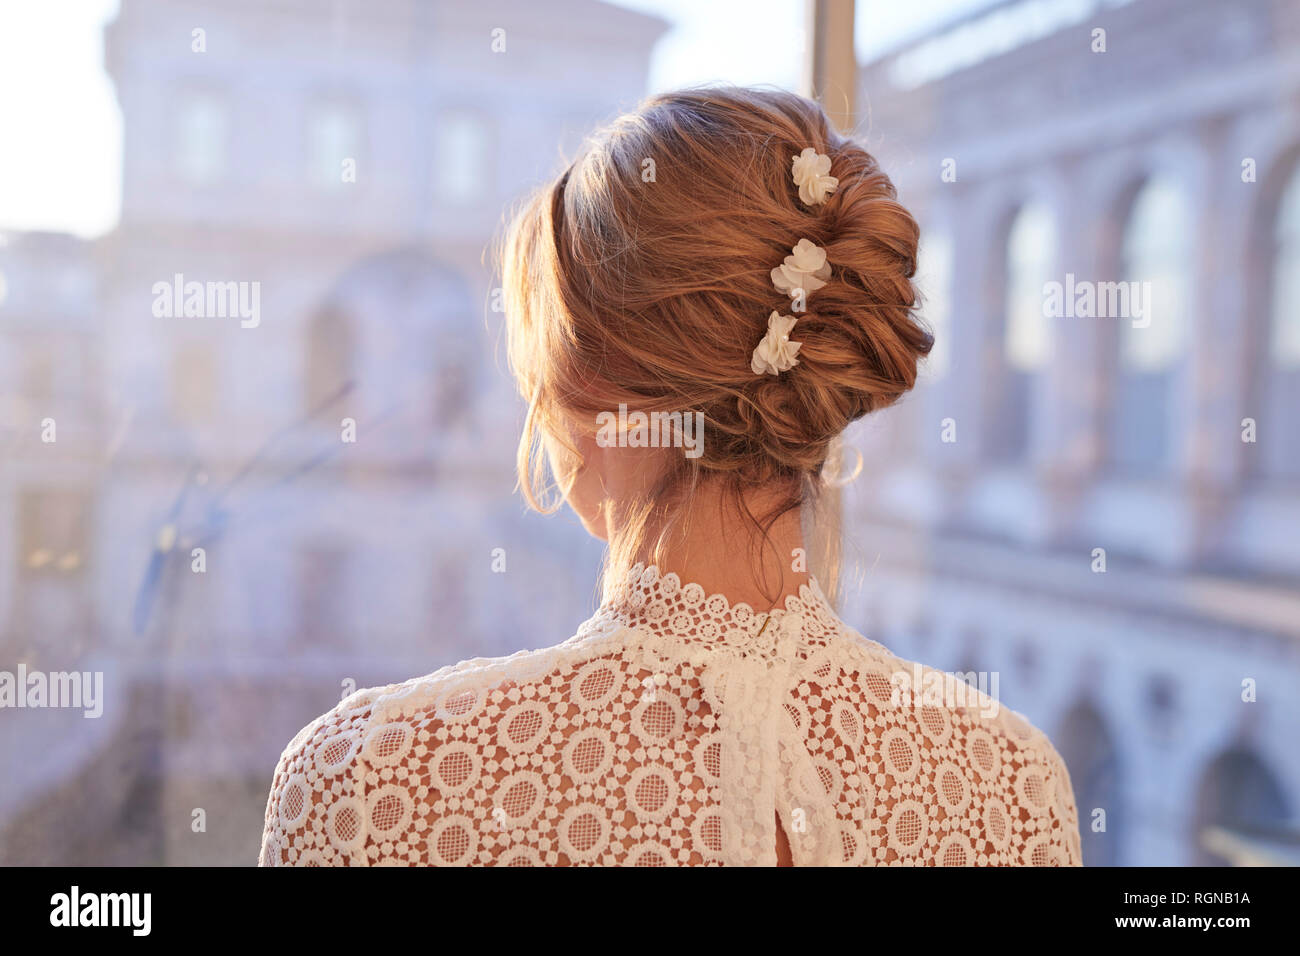 Portrait of blond bride, rear view, looking through window - Stock Image